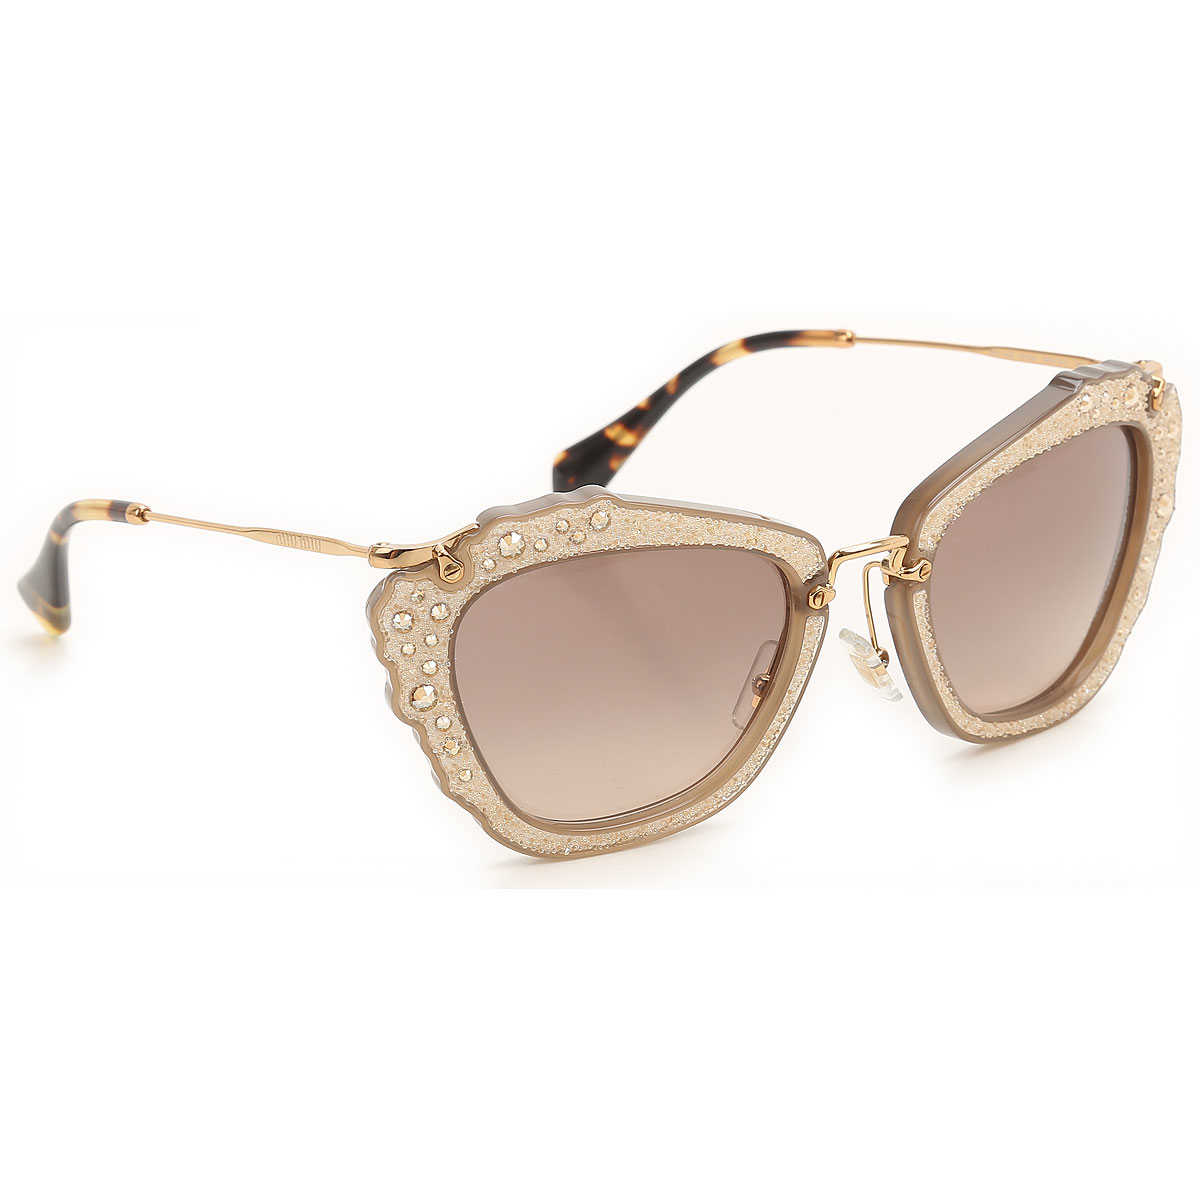 Miu Miu Sunglasses On Sale